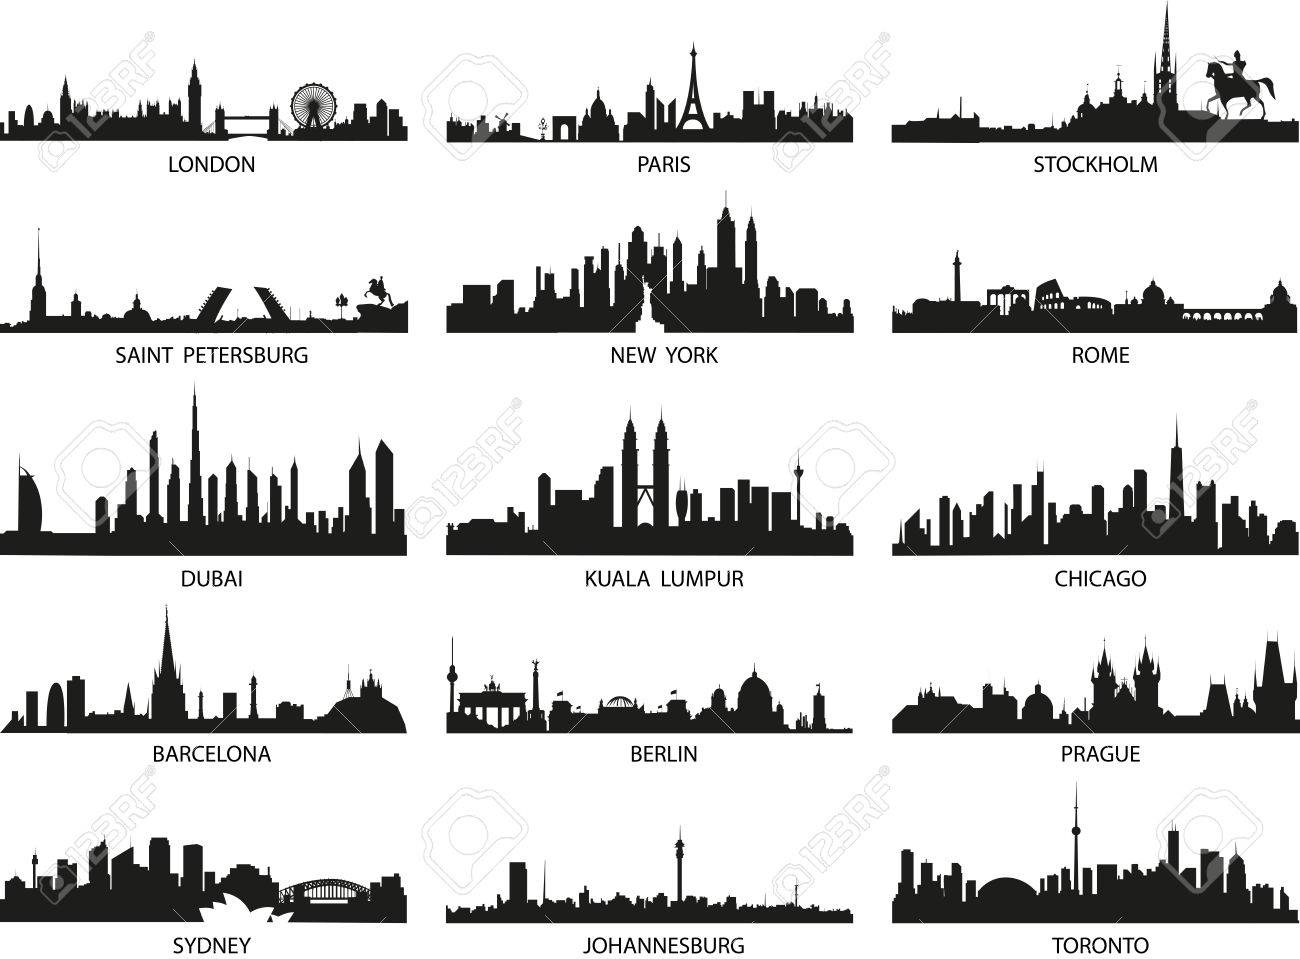 Vector Silhouettes Of The City Skylines Royalty Free Cliparts Vectors And Stock Illustration Image 83883594